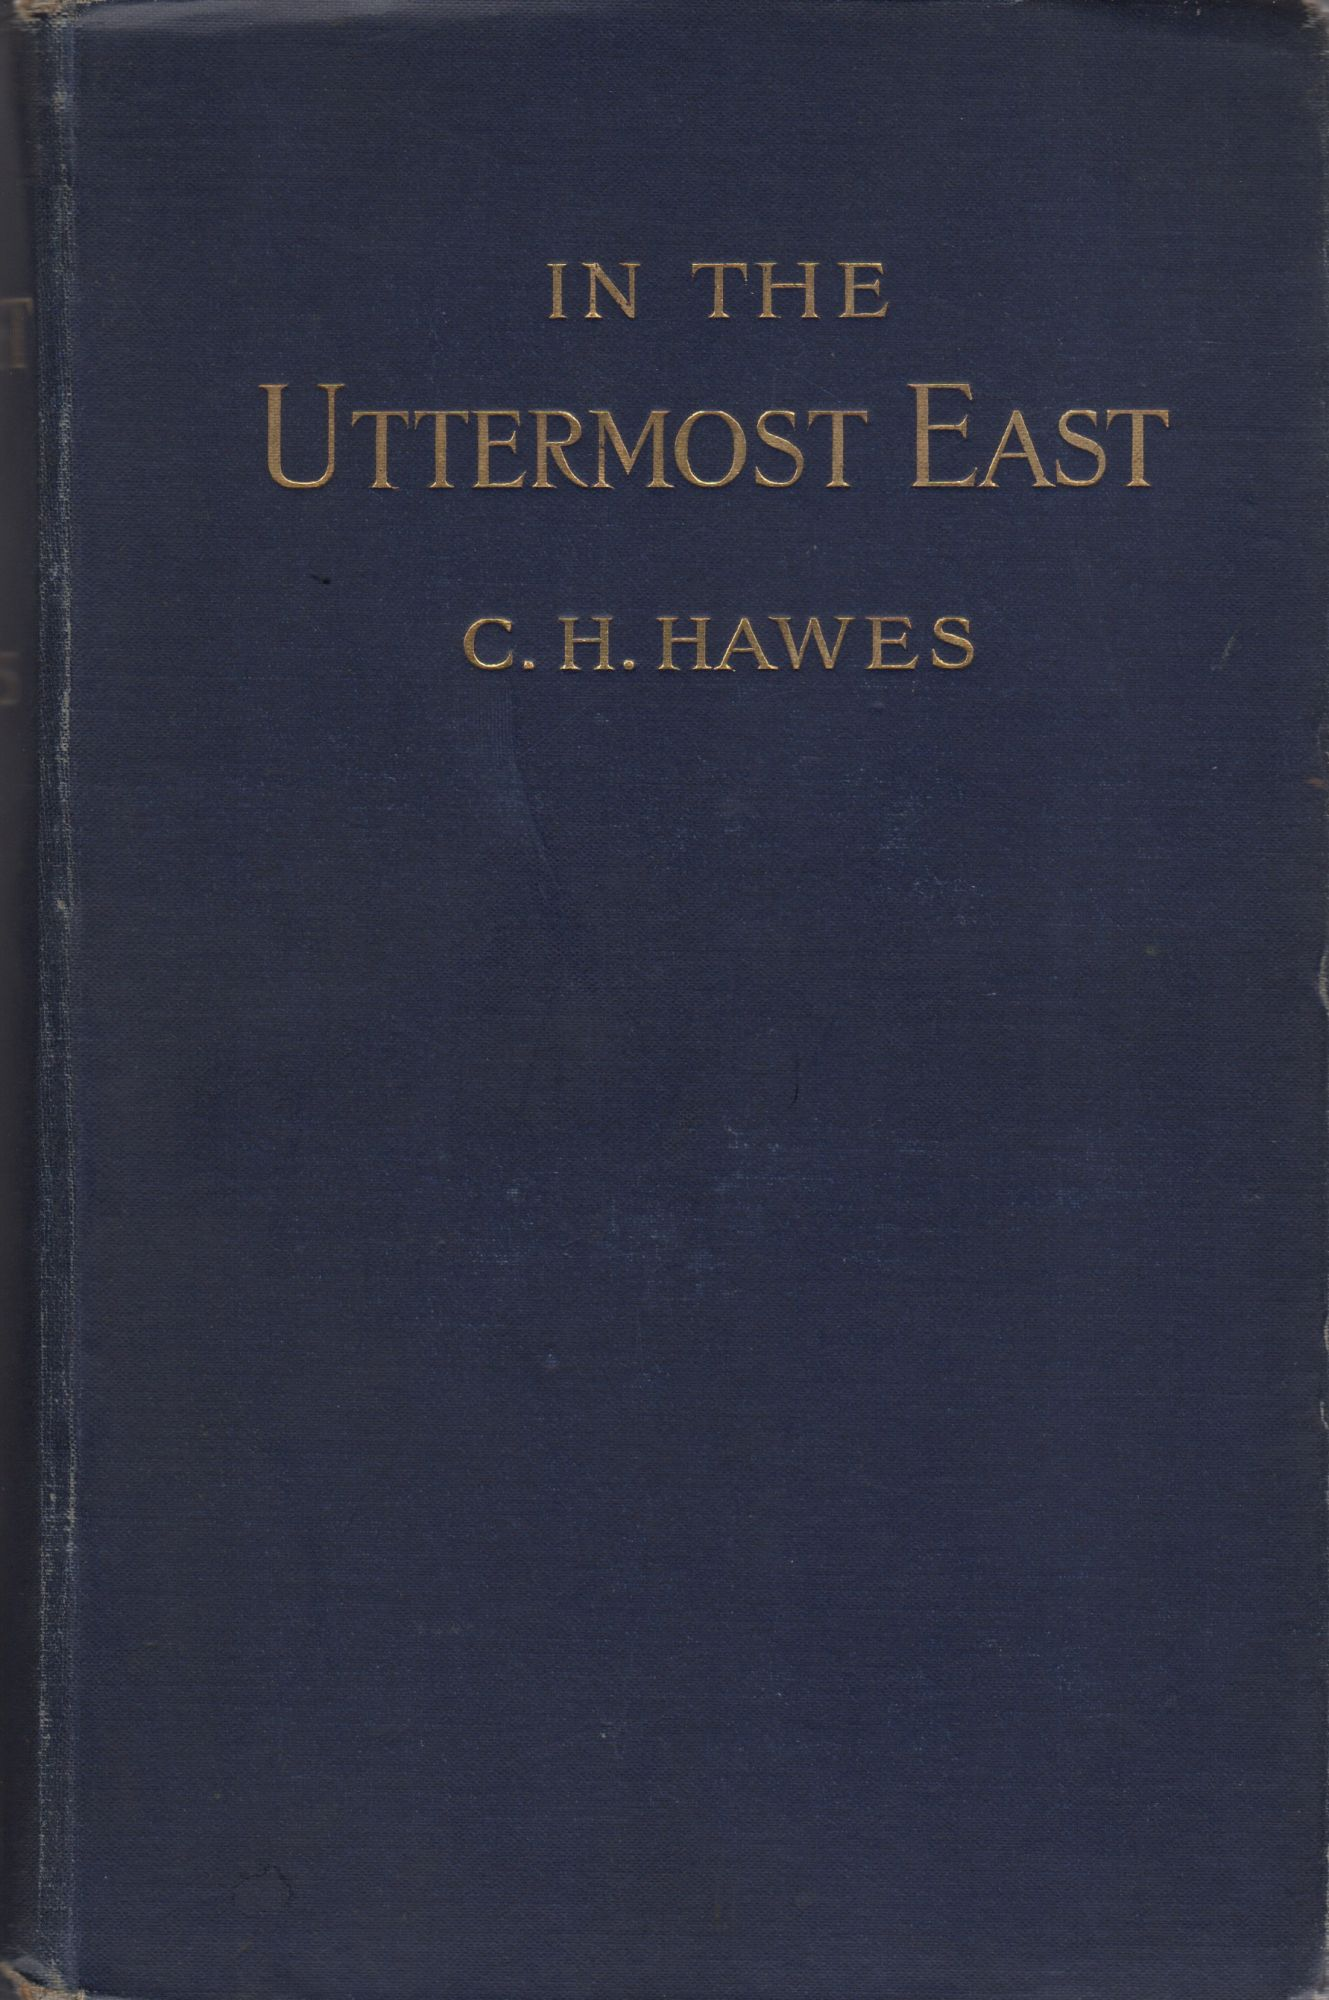 IN THE UTTERMOST EAST - BEING AN ACCOUNT OF INVESTIGATIONS AMONG THE NATIVES AND RUSSIAN CONVICTS OF THE ISLAND OF SAKHALIN, WITH NOTES OF TRAVEL IN KOREA, SIBERIA, AND MANCHURIA. Charles H. Hawes.